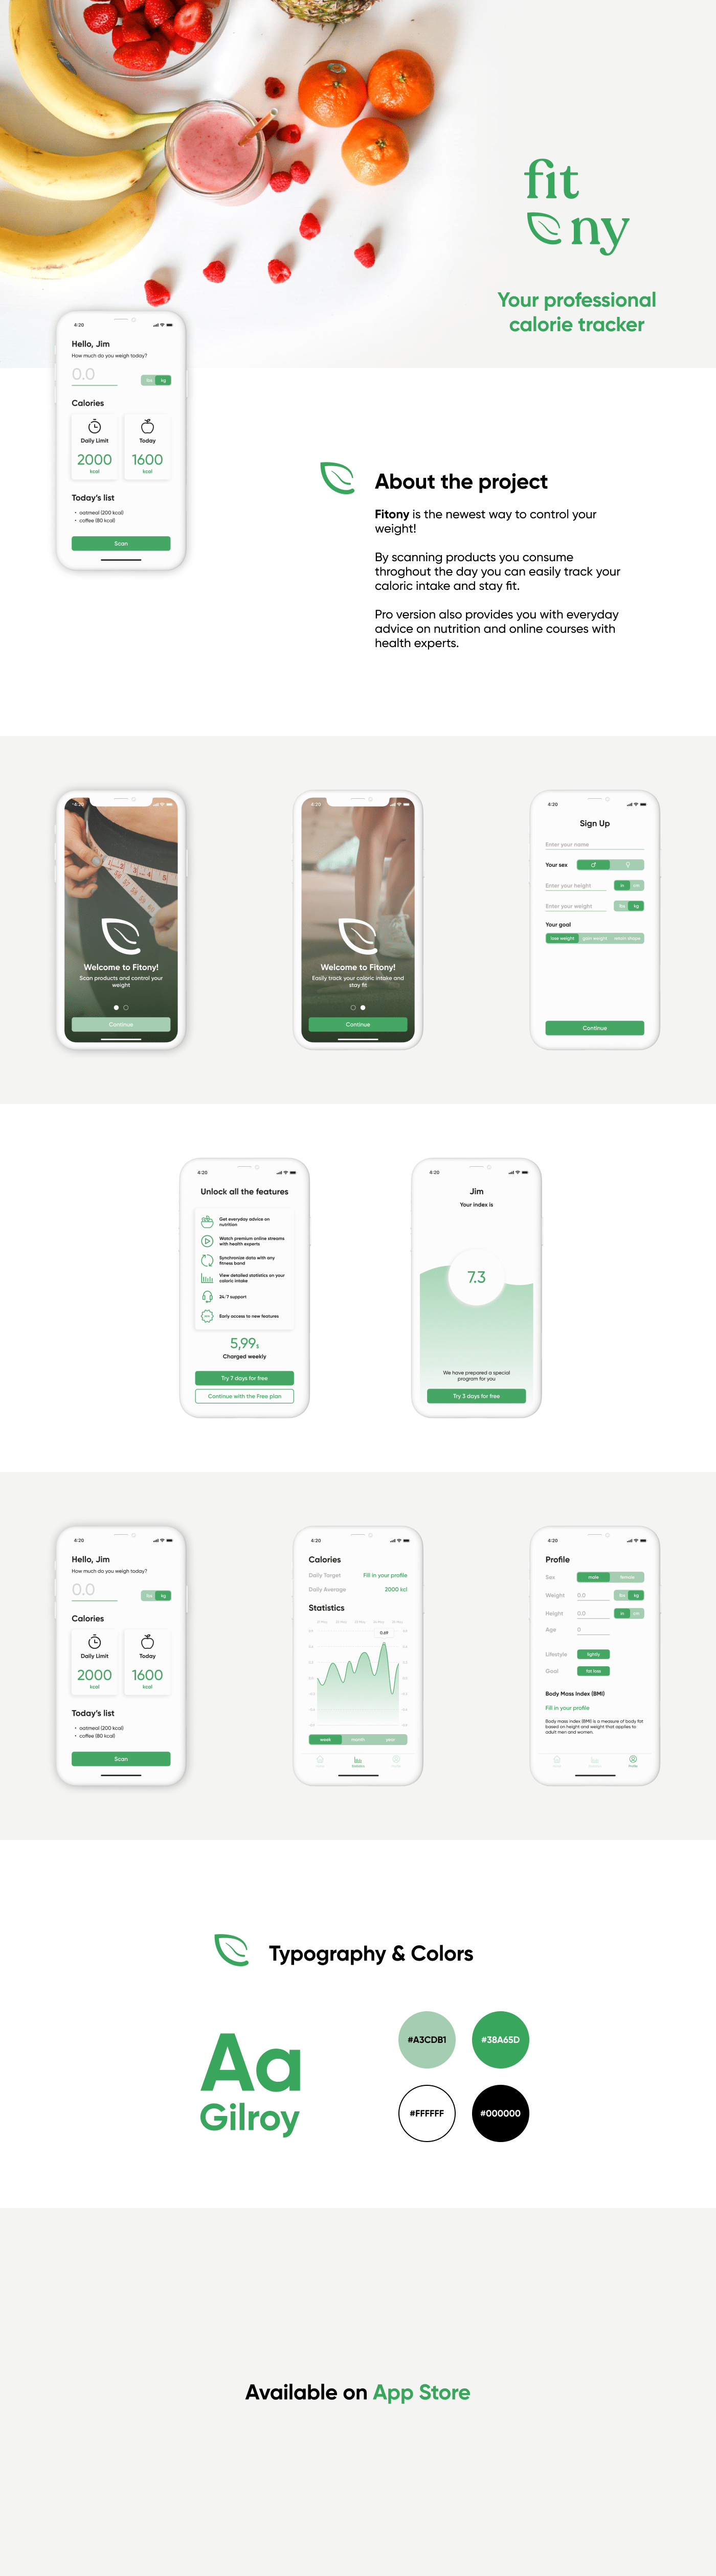 Fitony App — control your weight